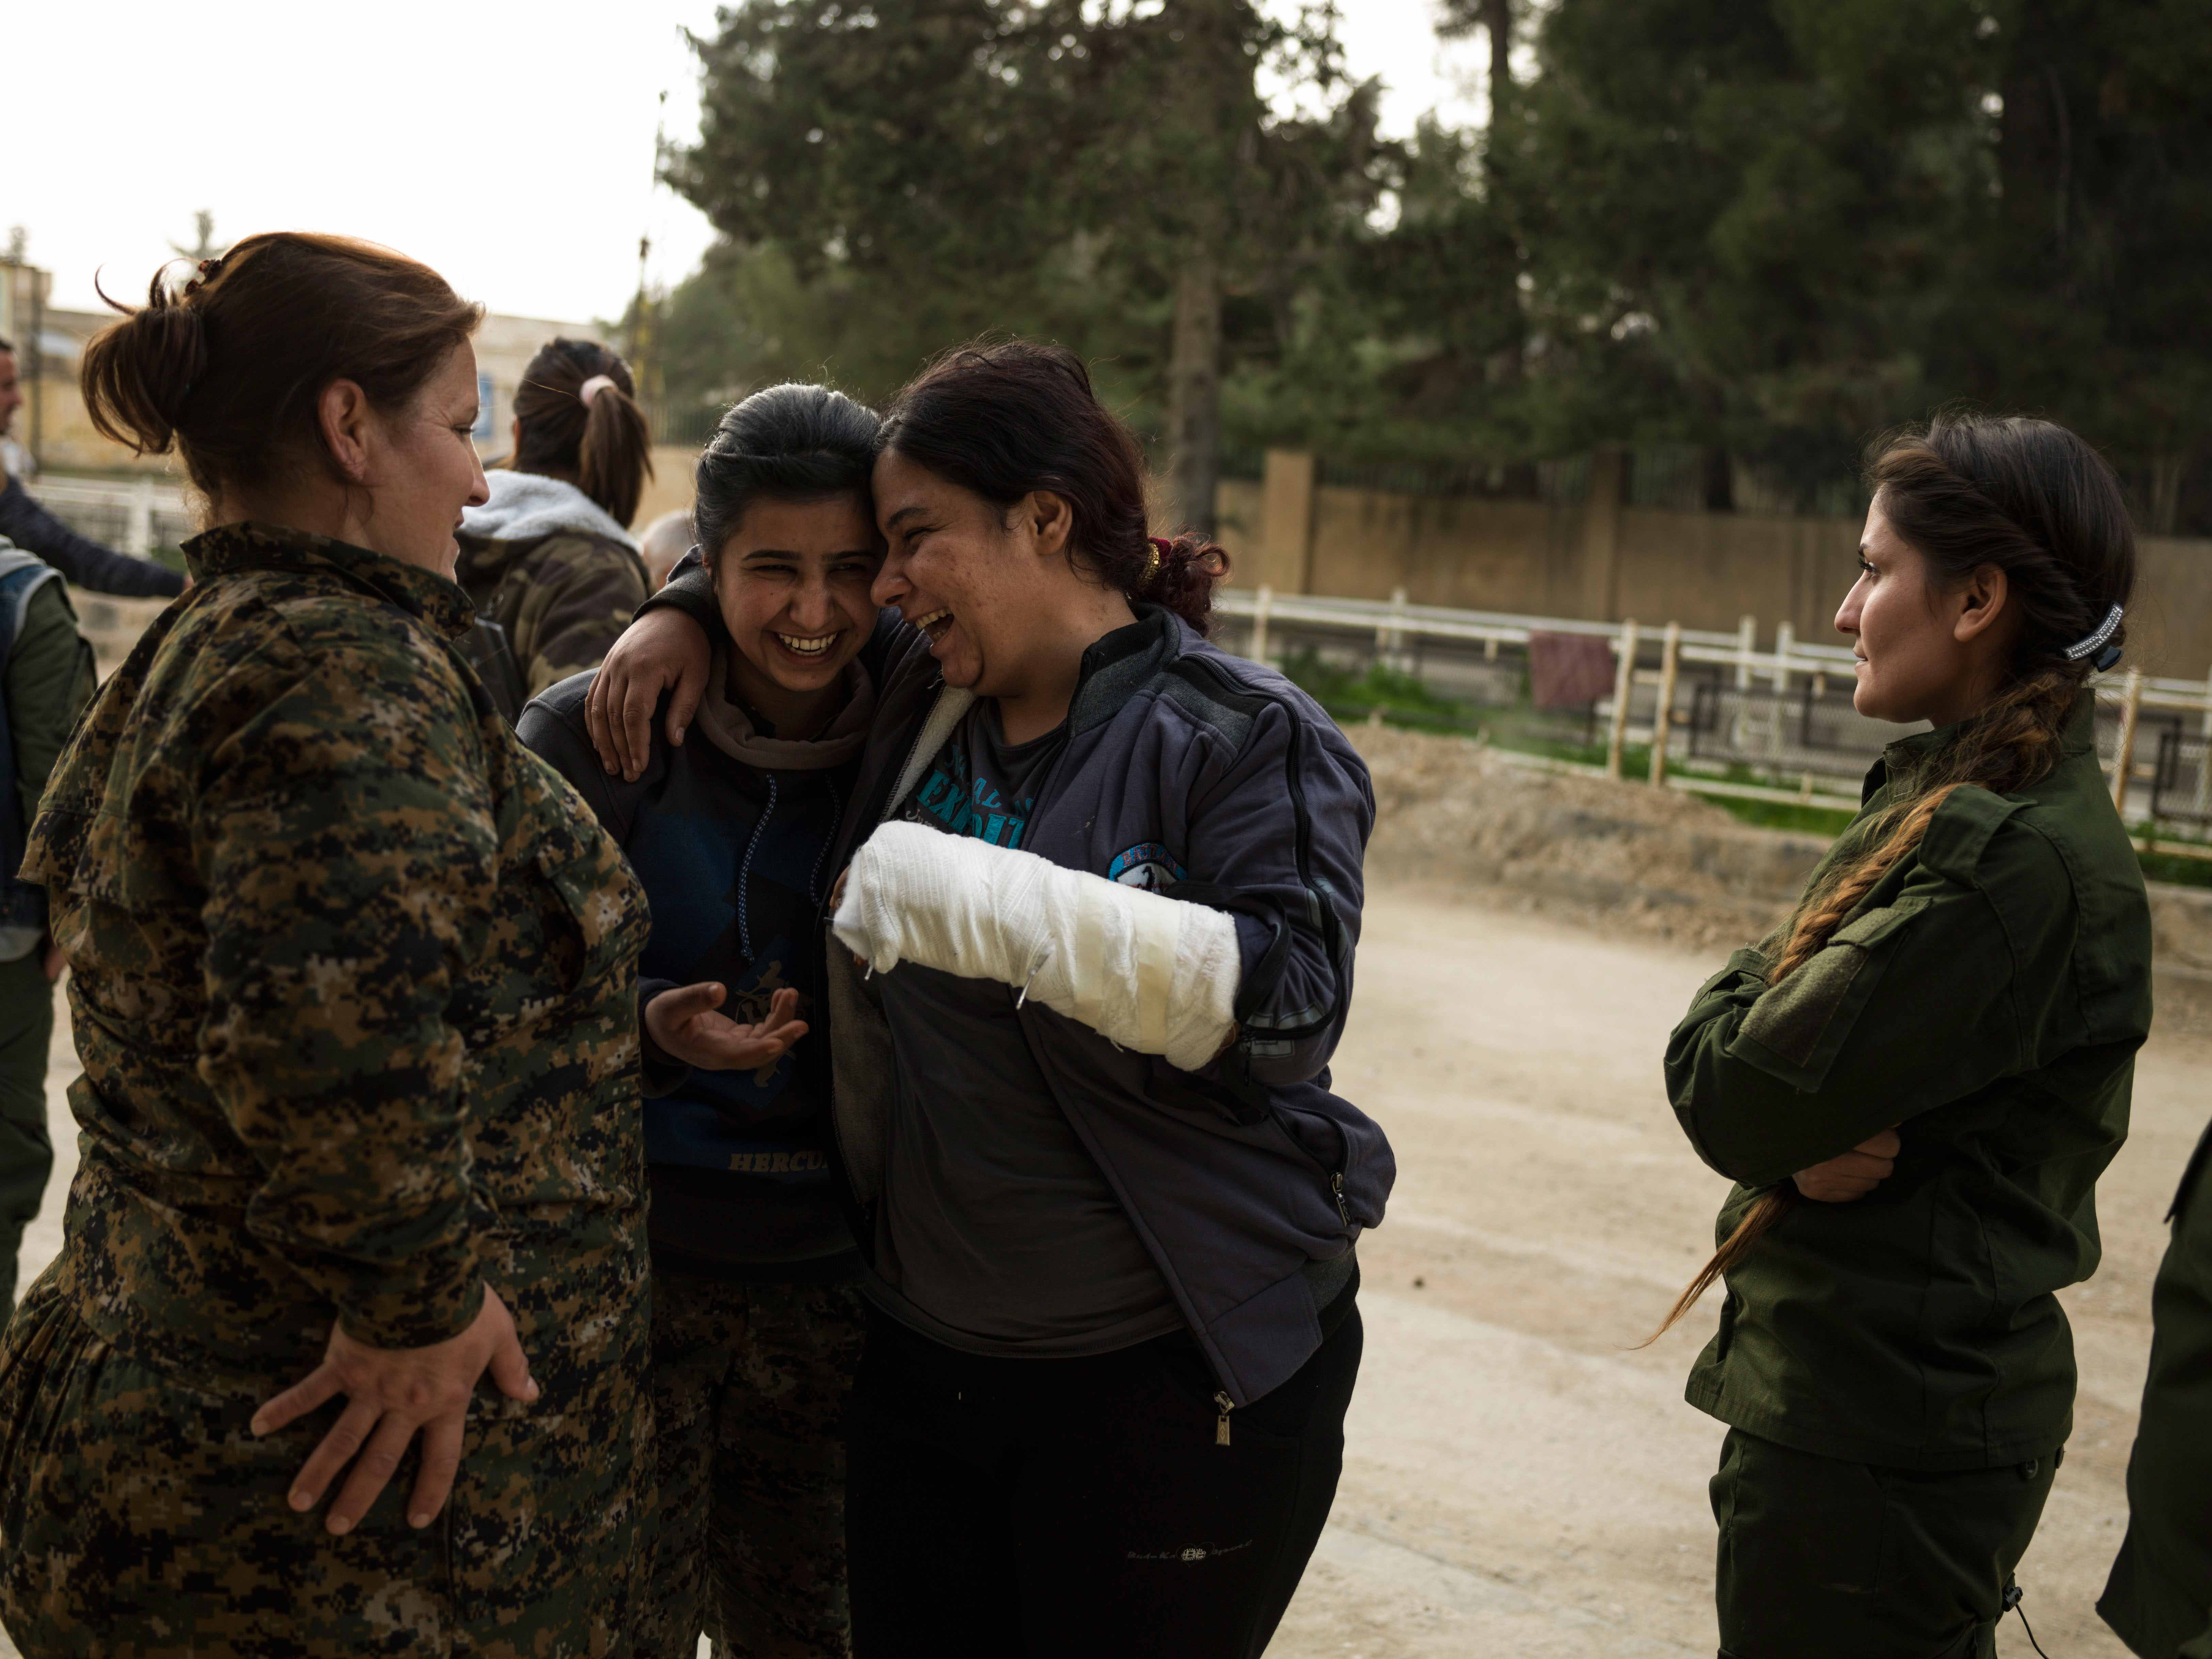 Wounded YPJ members leave the Asayesh all-women security base in Derek. © Newsha Tavakolian / Magnum Photos